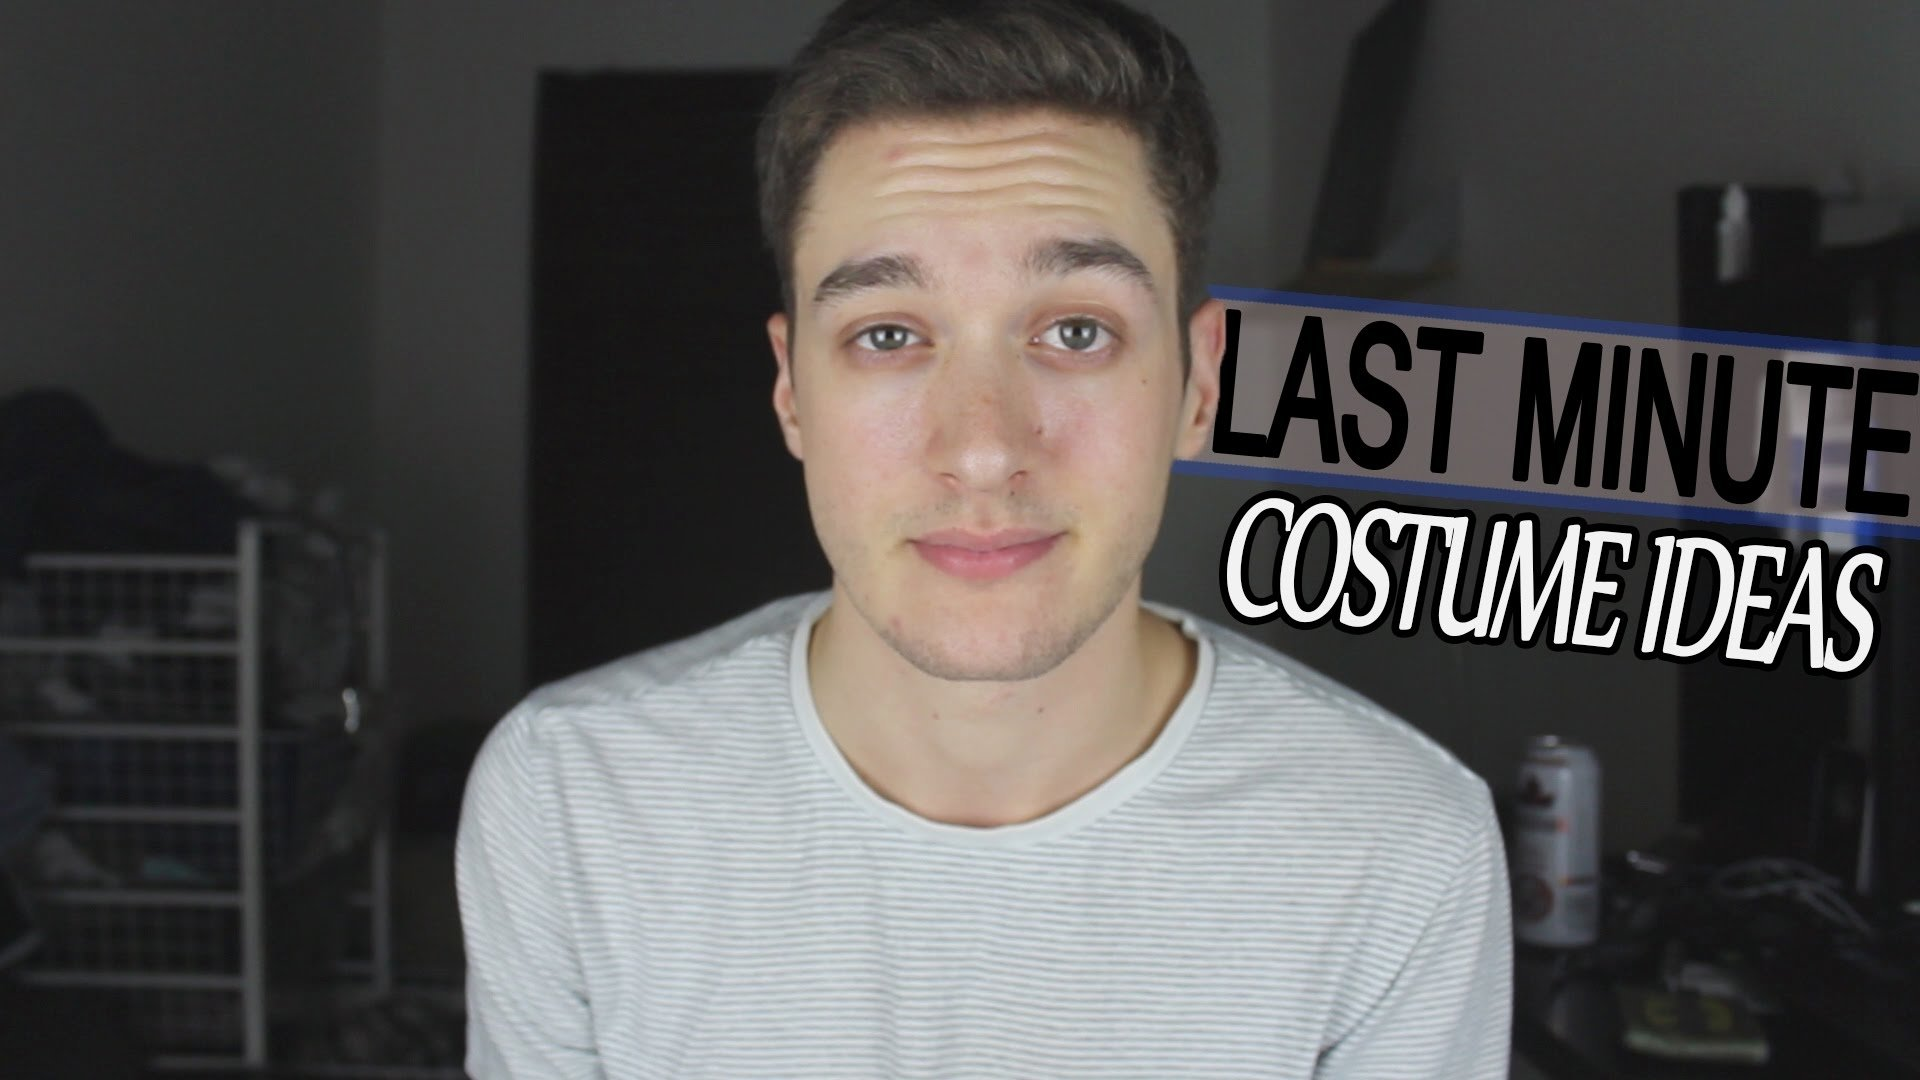 last minute costume ideas - youtube